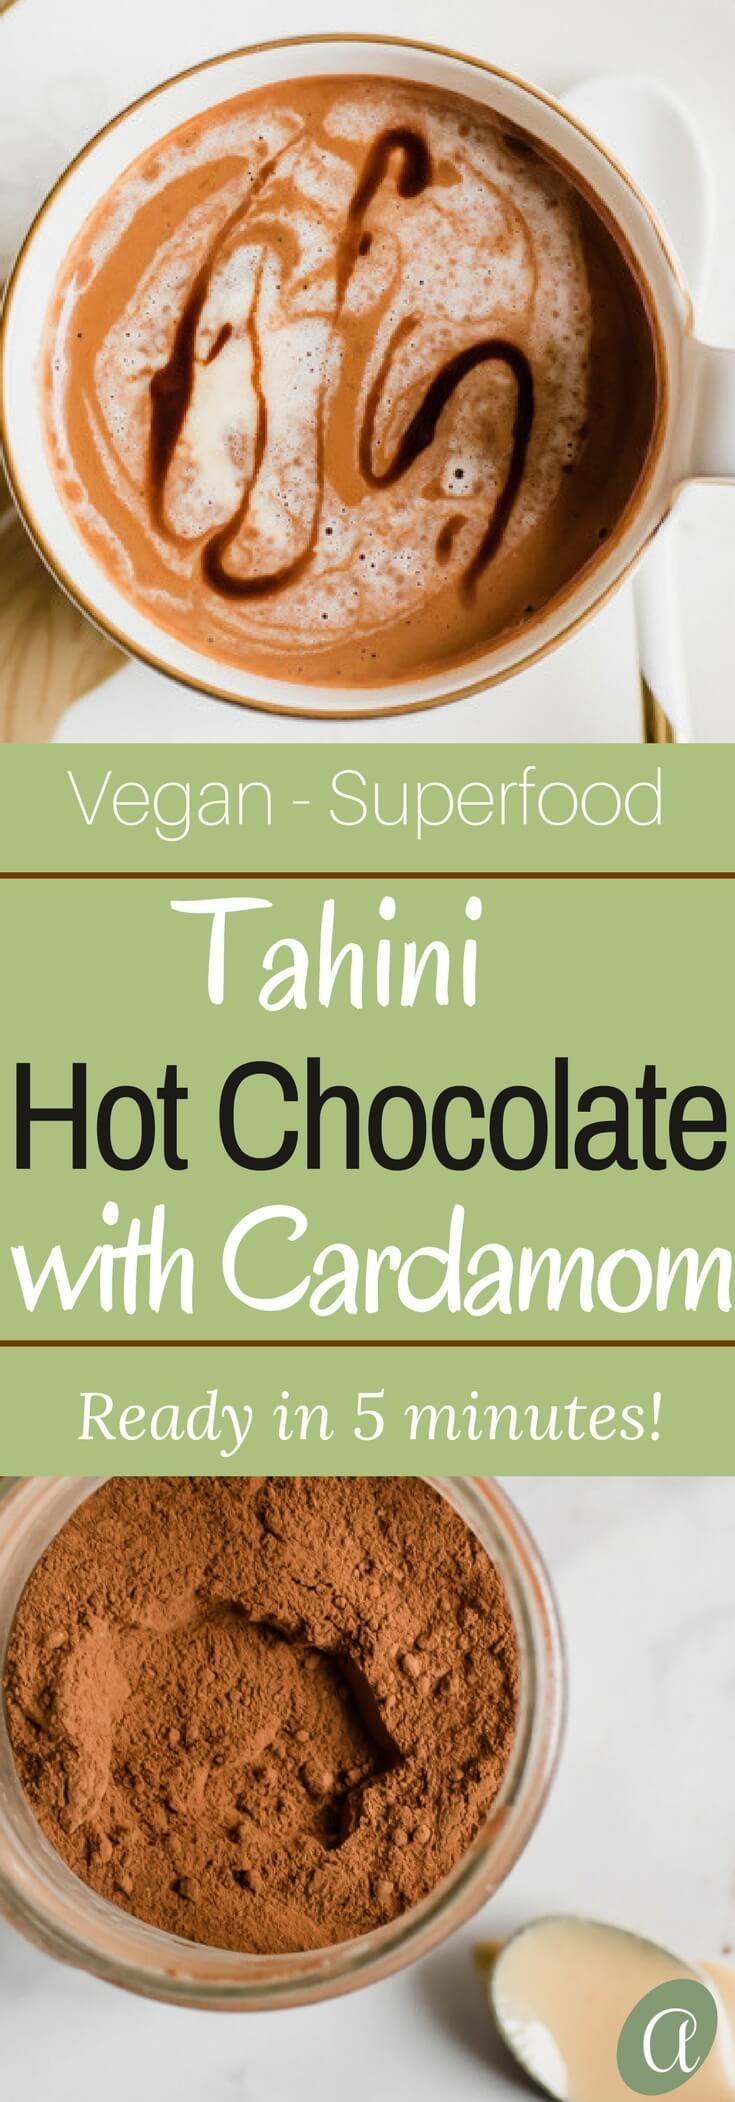 A rich and creamy vegan hot chocolate recipe touched with a pinch of fragrant cardamom and nutty tahini. Hot chocolate that is loaded with good for you ingredients and easily prepared in 5 minutes! #paleo #vegan #dairyfree #superfood #hotchocolate via @abrapappa